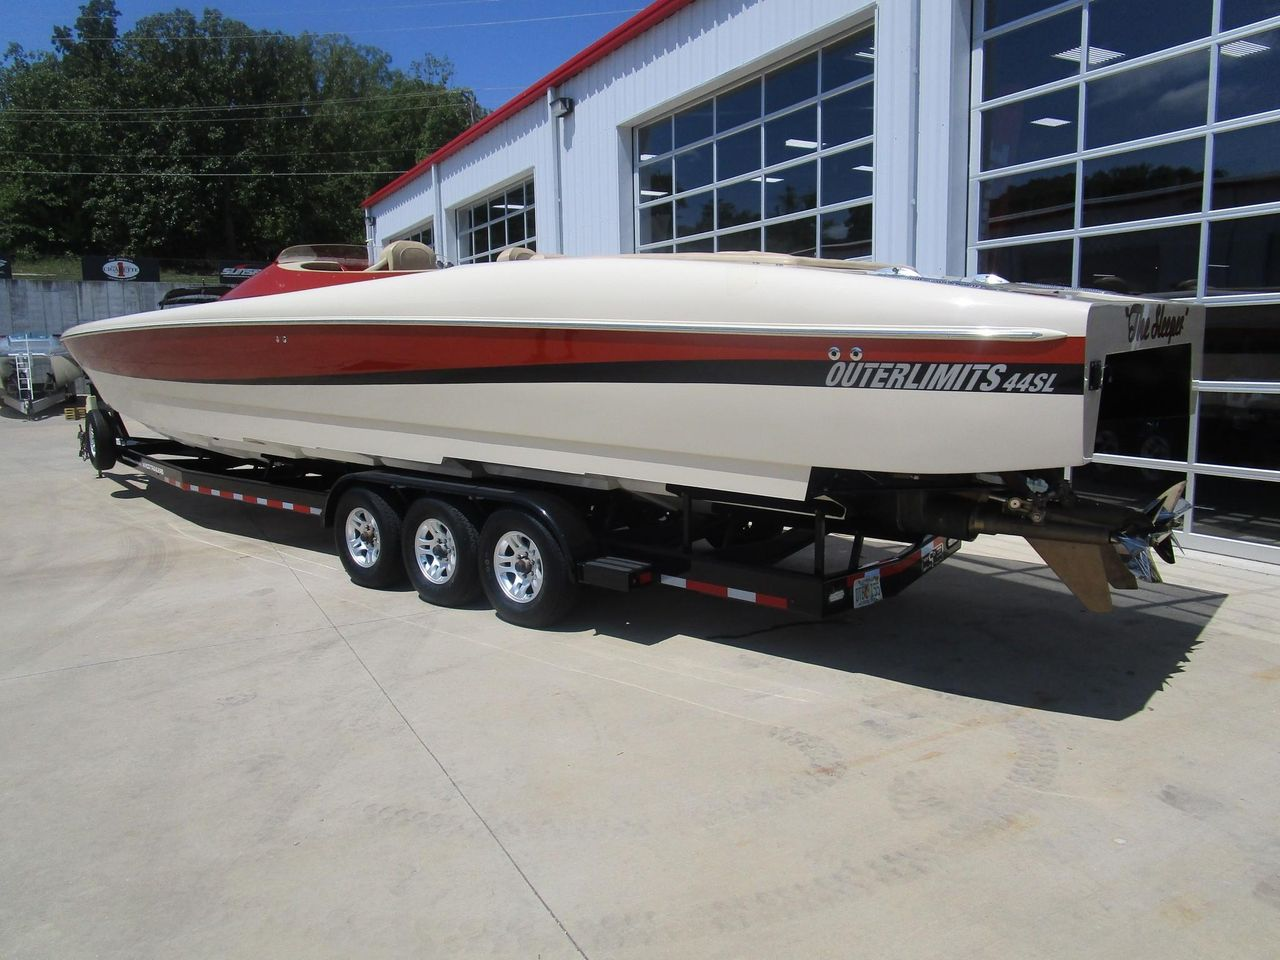 2011 Used Outerlimits 44SL High Performance Boat For Sale